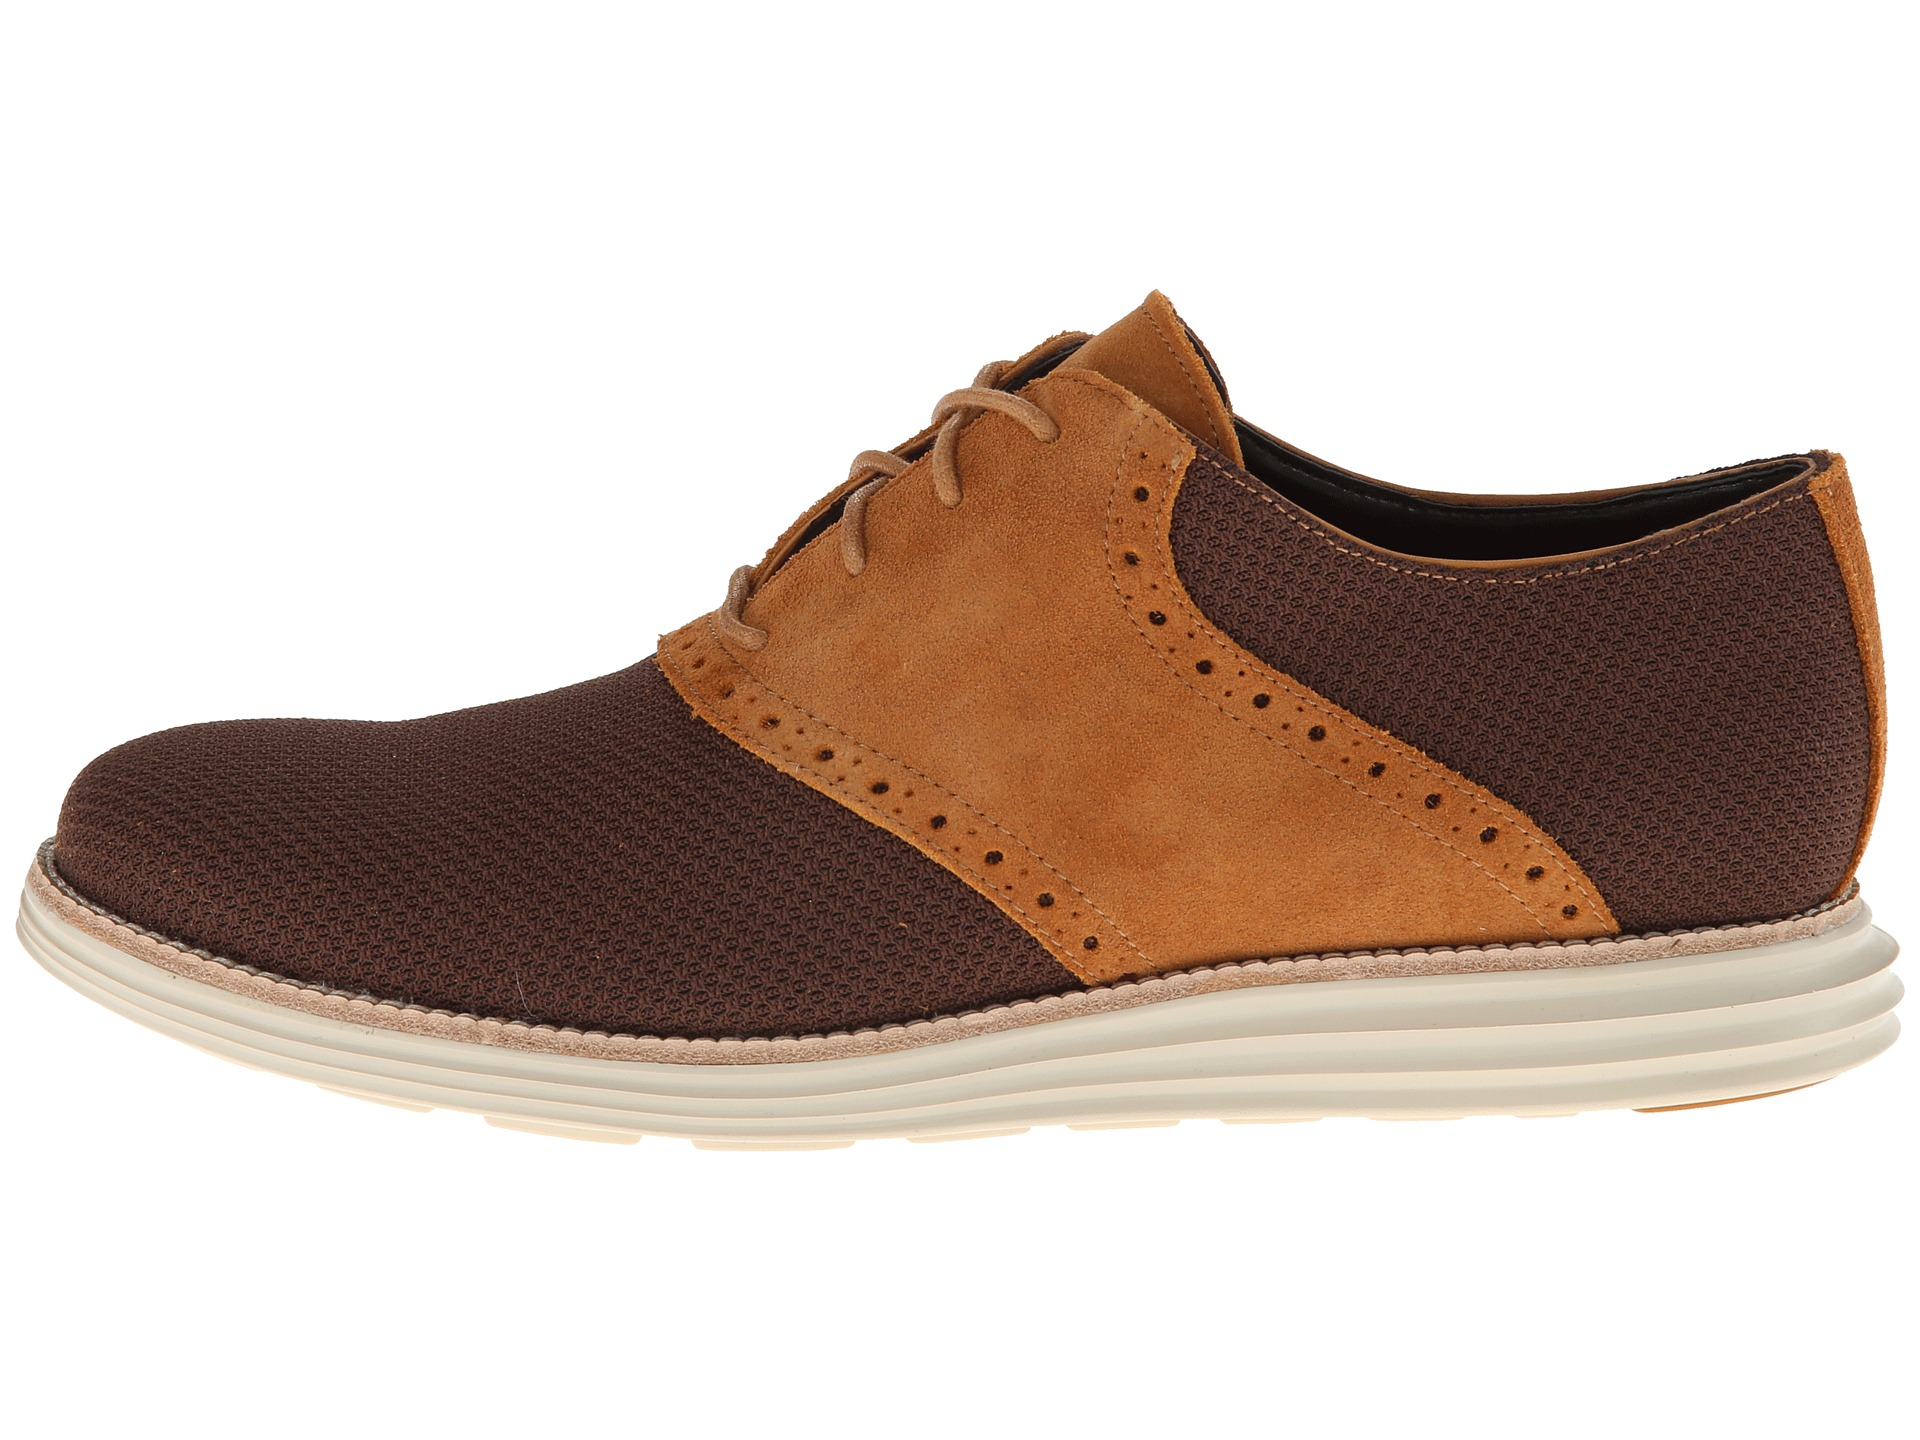 Cole Haan Nordstrom Rack -> Source Cole haan locations in canada shoes bags accessories for men brand shoes on men cole haan grant escape abundant cole haan usa outlet online women s shoes boat shoes cole haan pinch weekender loafers in stormcloud men. Whats people lookup in this blog.